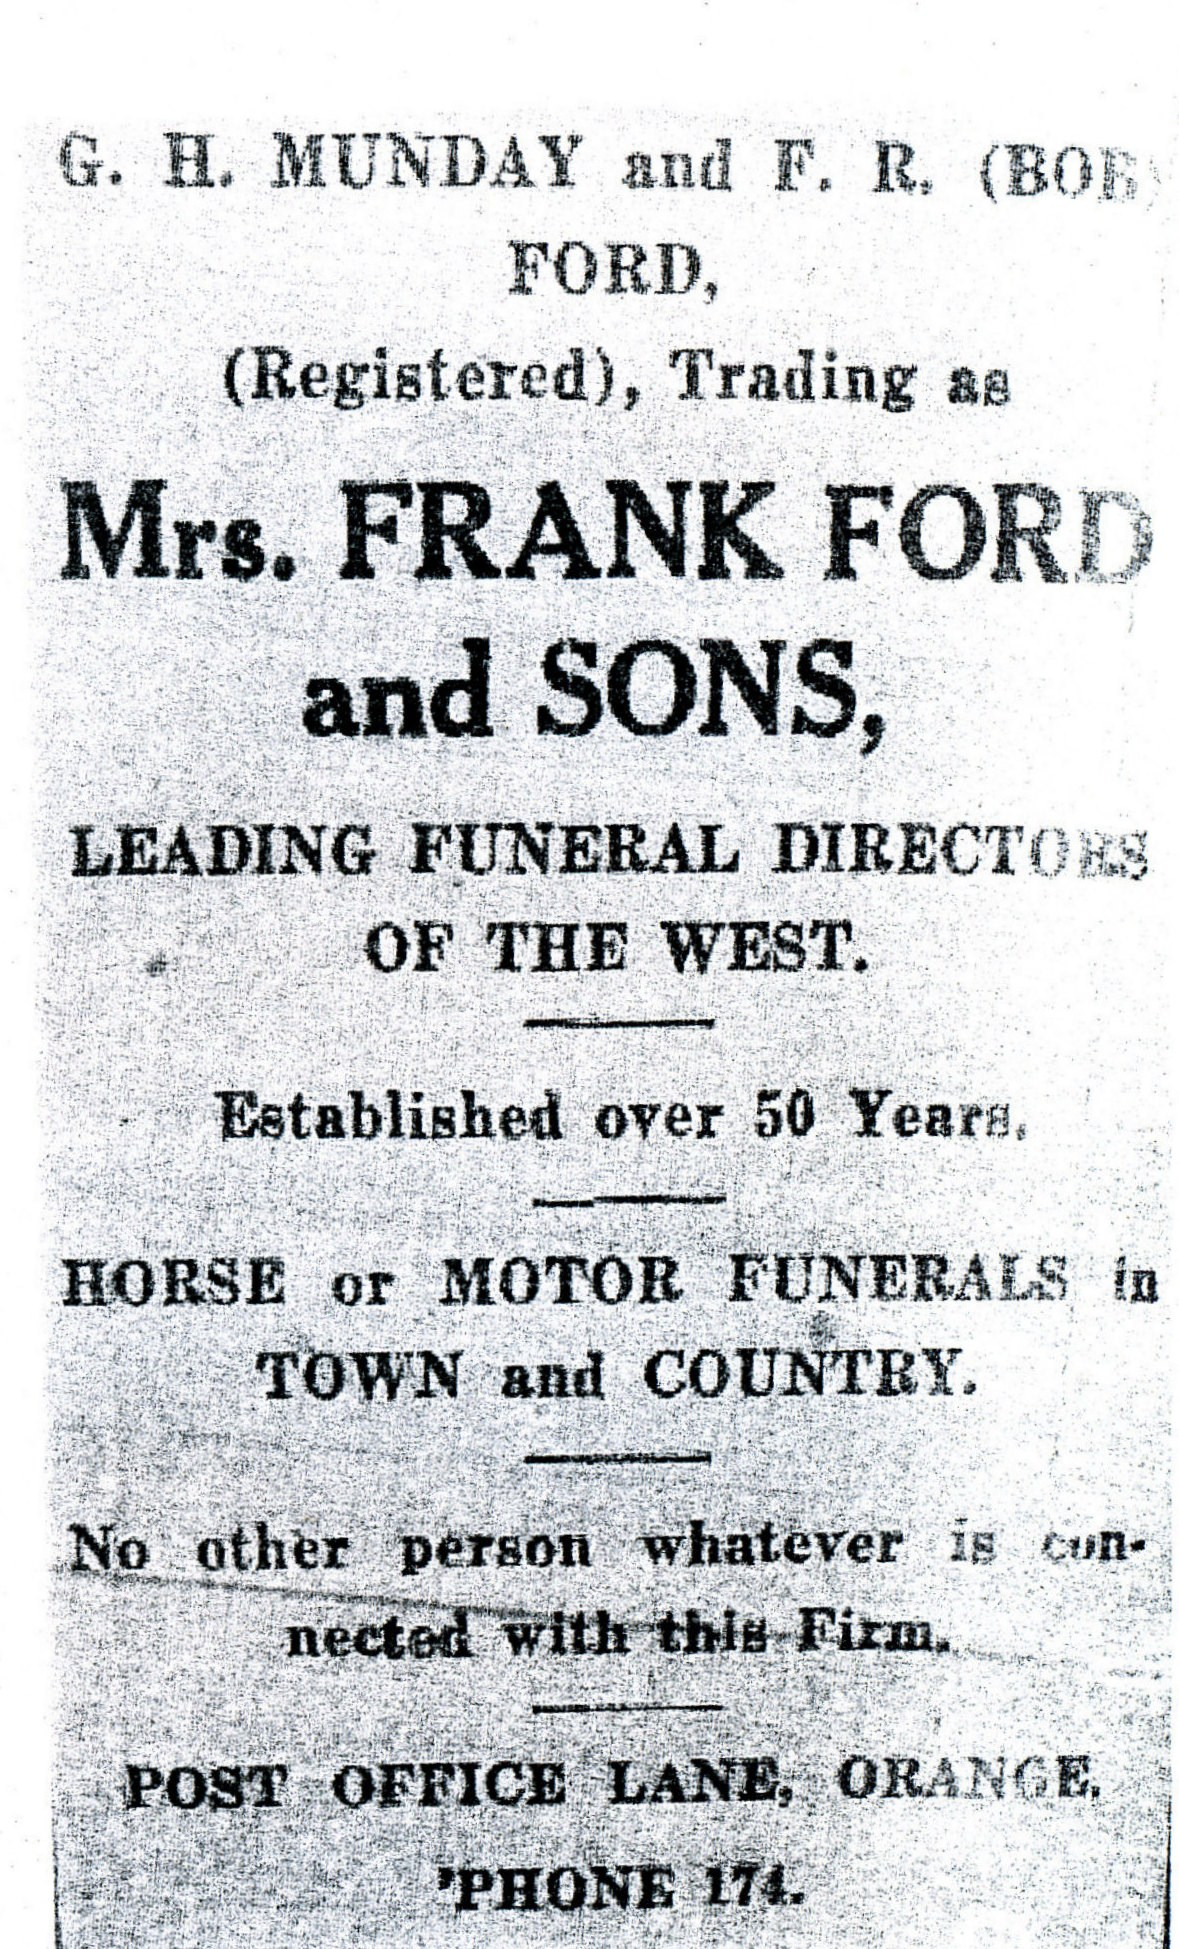 Bob Ford Funeral director